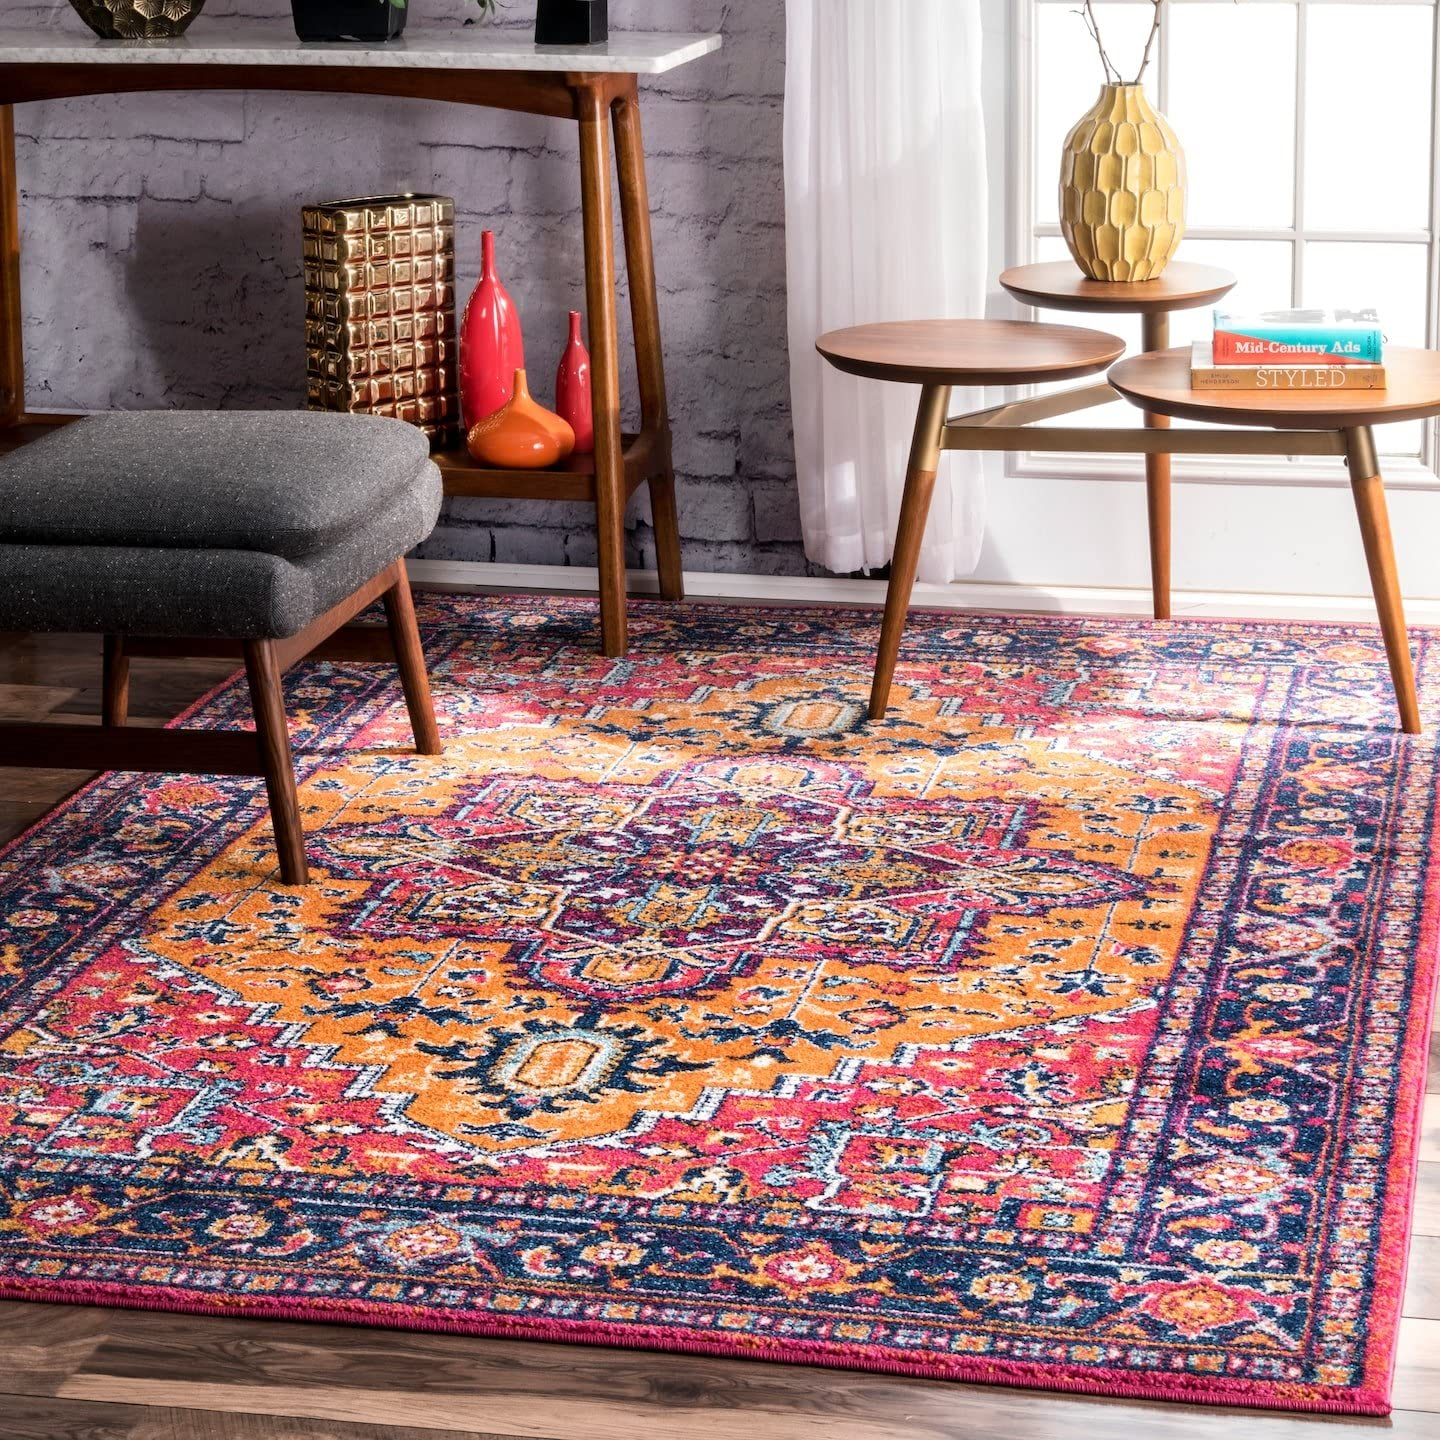 nuLOOM 200RZBD32B-8010 Vonda Fancy Persian Area Rug, 8 x 10 , Orange